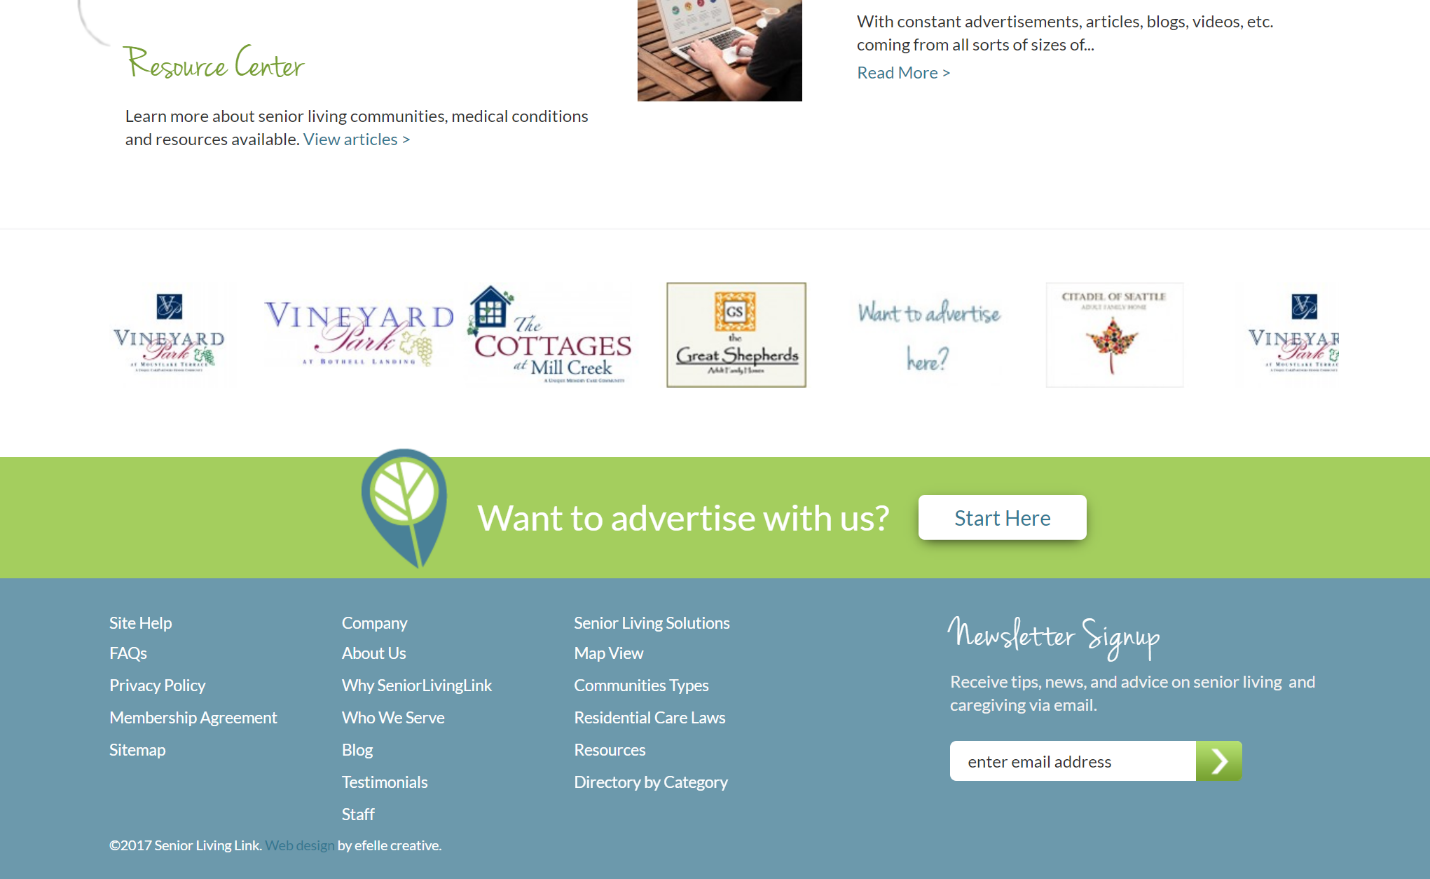 sample-home-page-scrolling-logo-ad.png